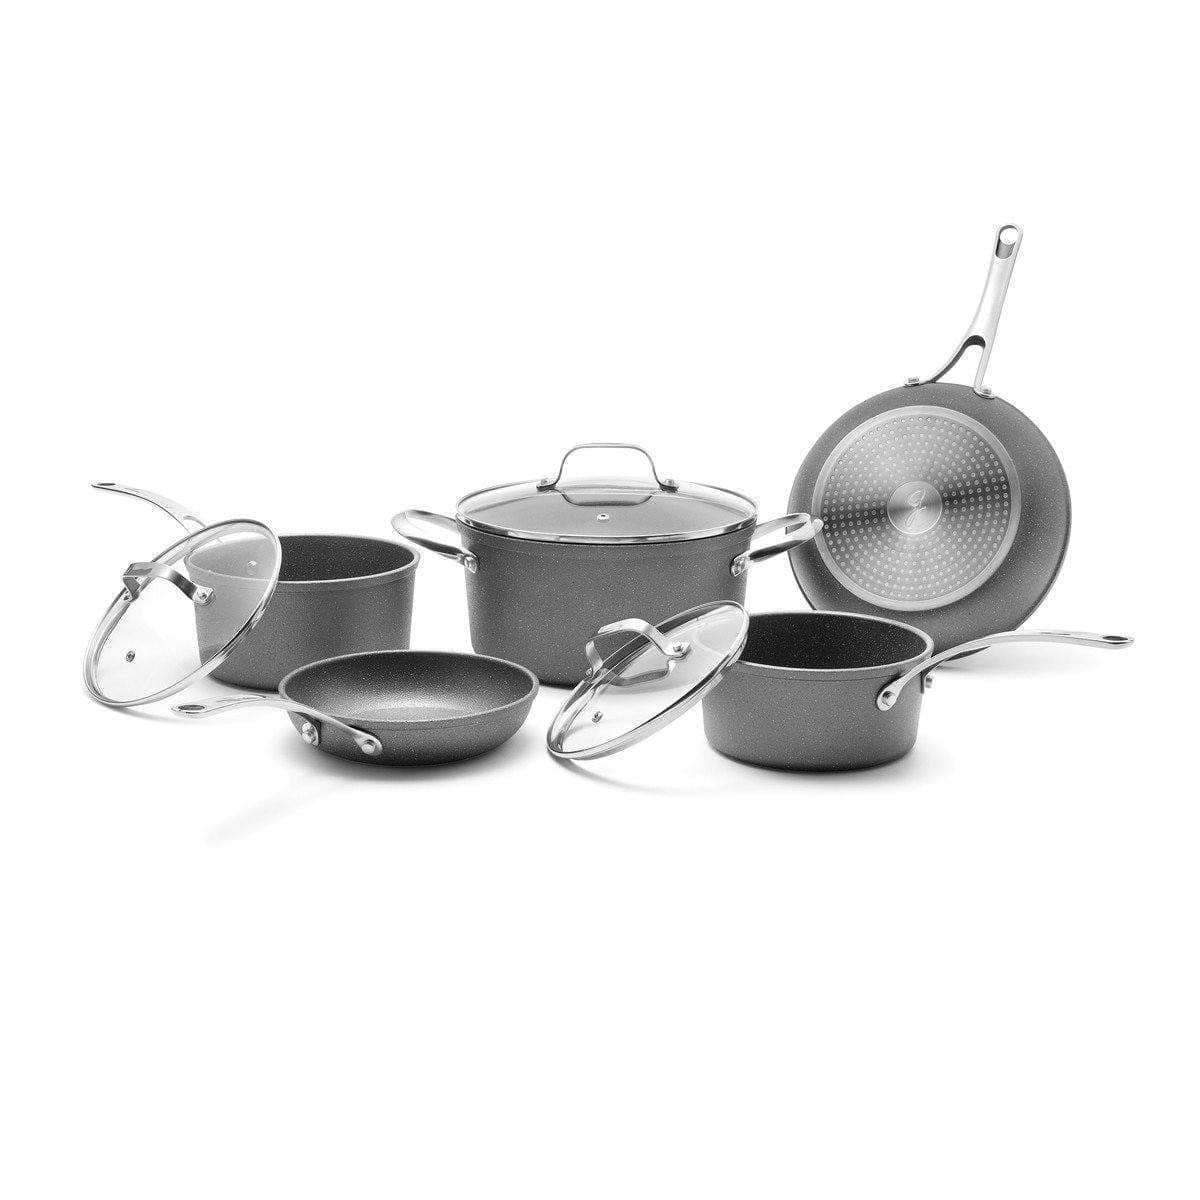 Starfrit Kitchen The Rock 8 Piece Cookware Set